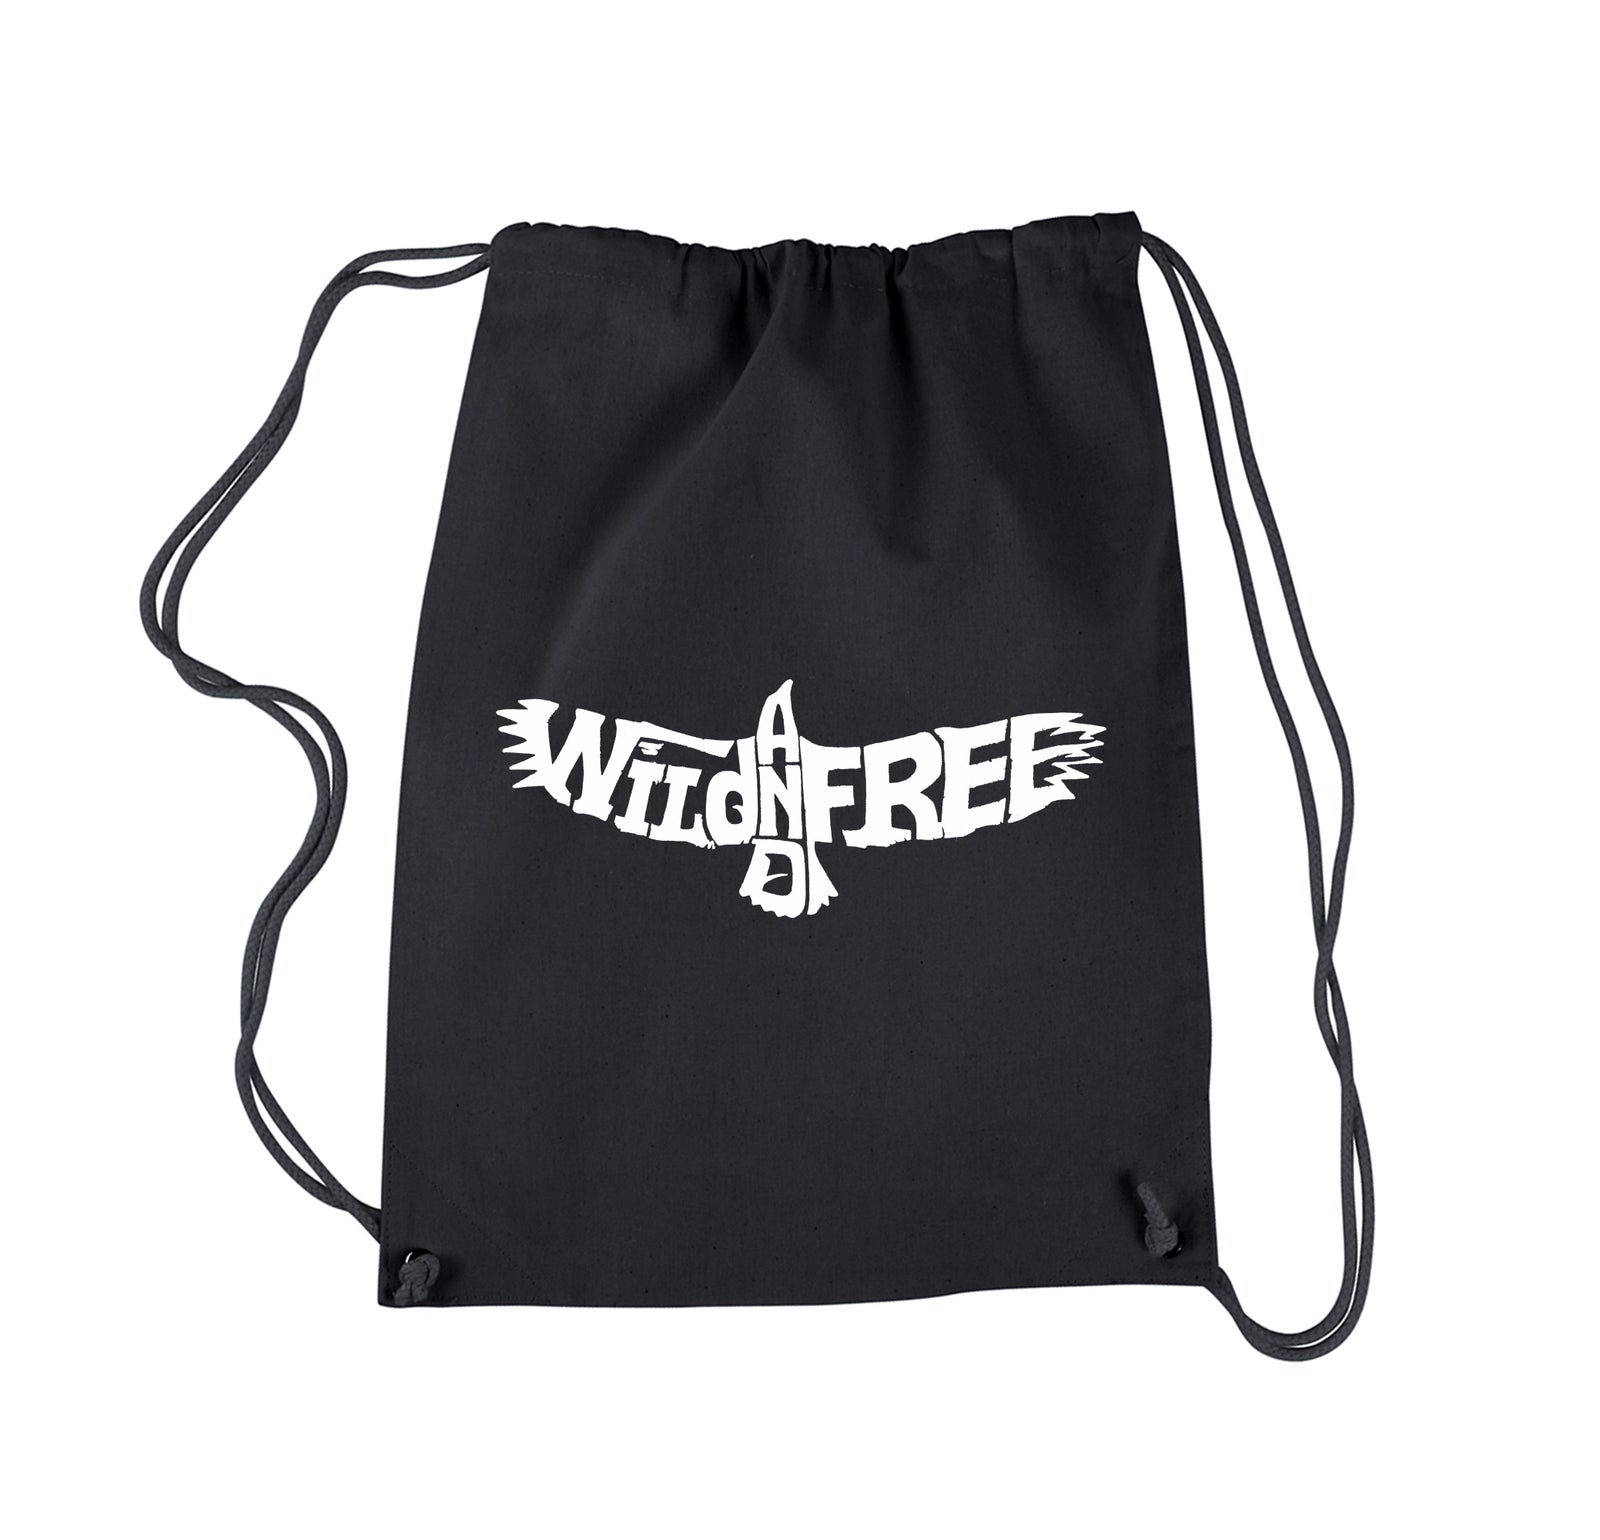 Drawstring Word Art Backpack - Wild and Free Eagle